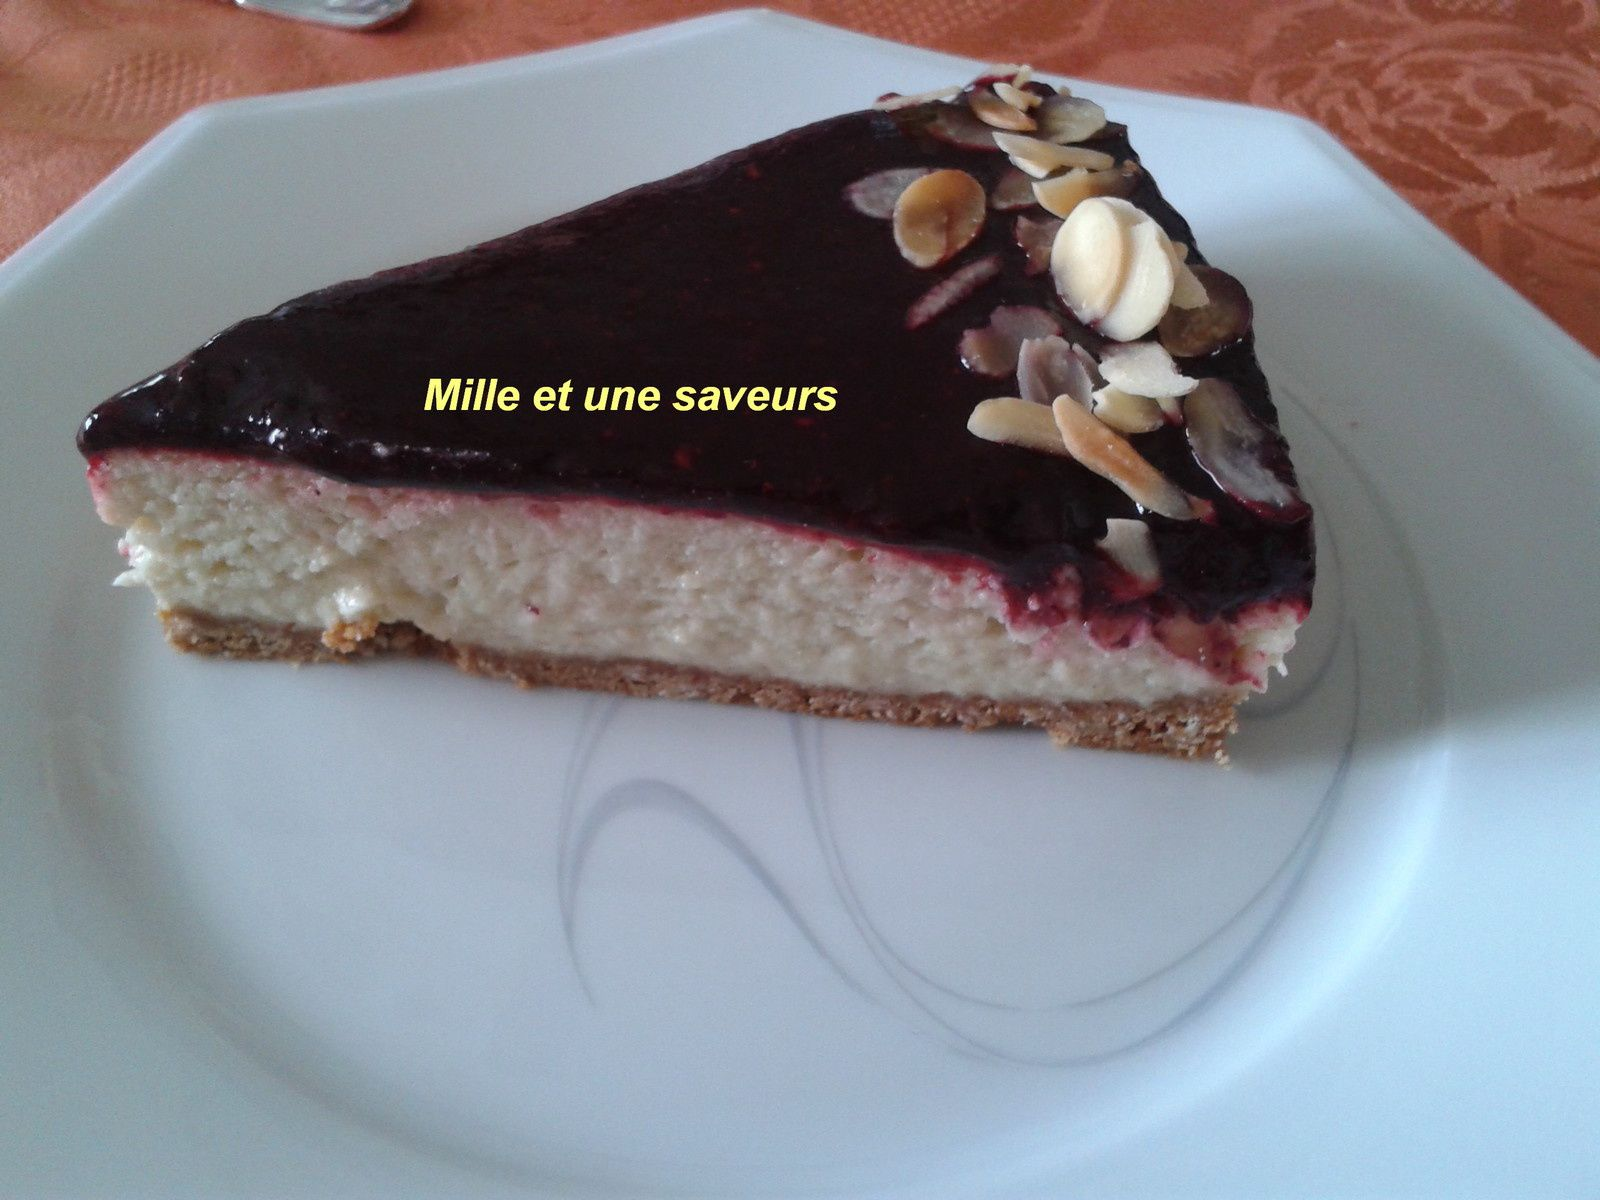 Bavarois rhubarbe et son miroir de fruits rouges